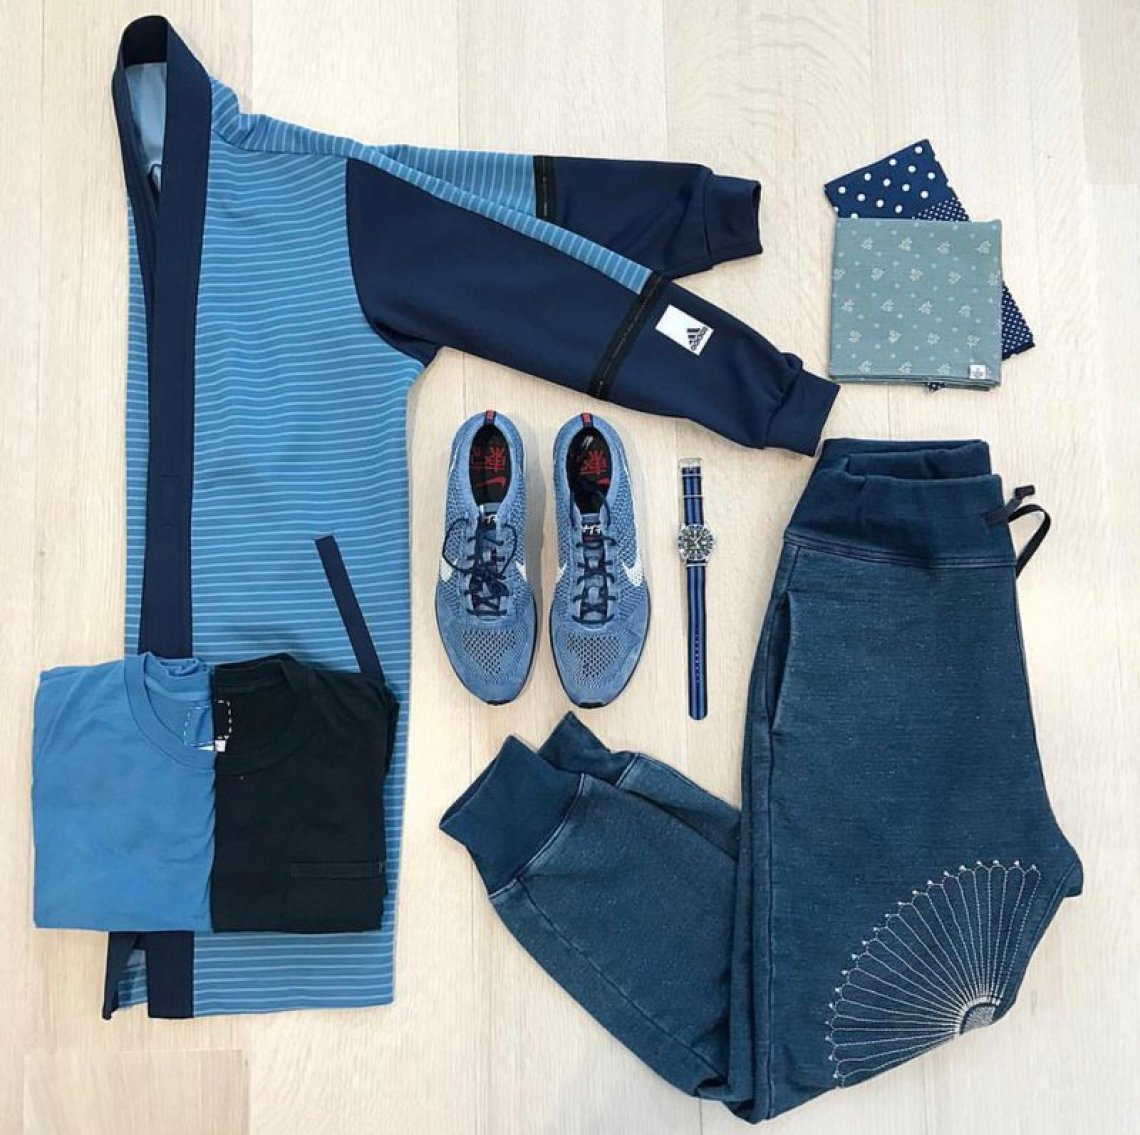 Incorporating various shades of indigo throughout your look is a great way to ensure that your style is gridlocked.